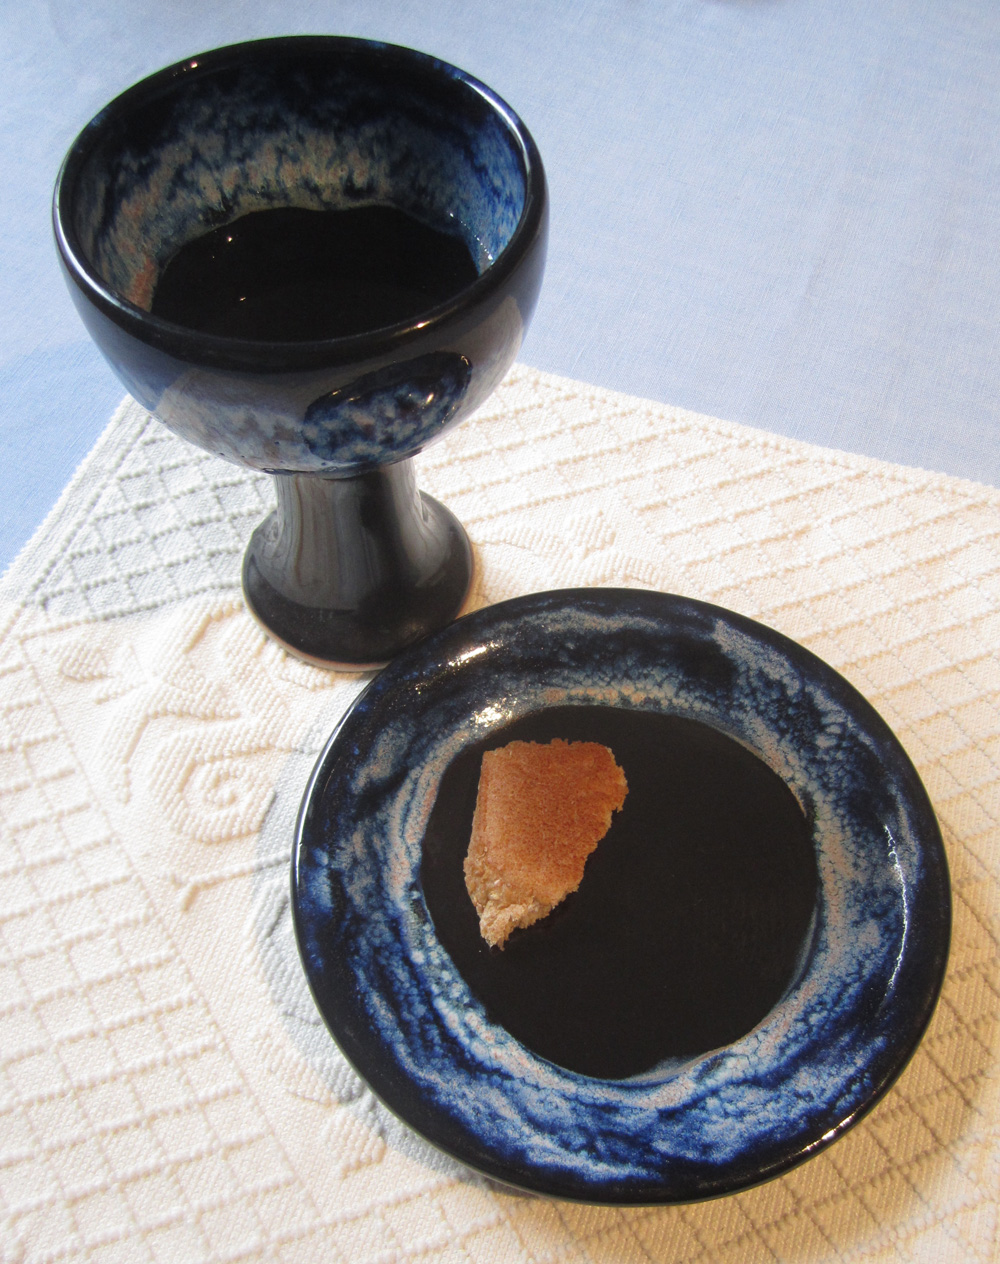 Rituals and Reverencing Holy Presence